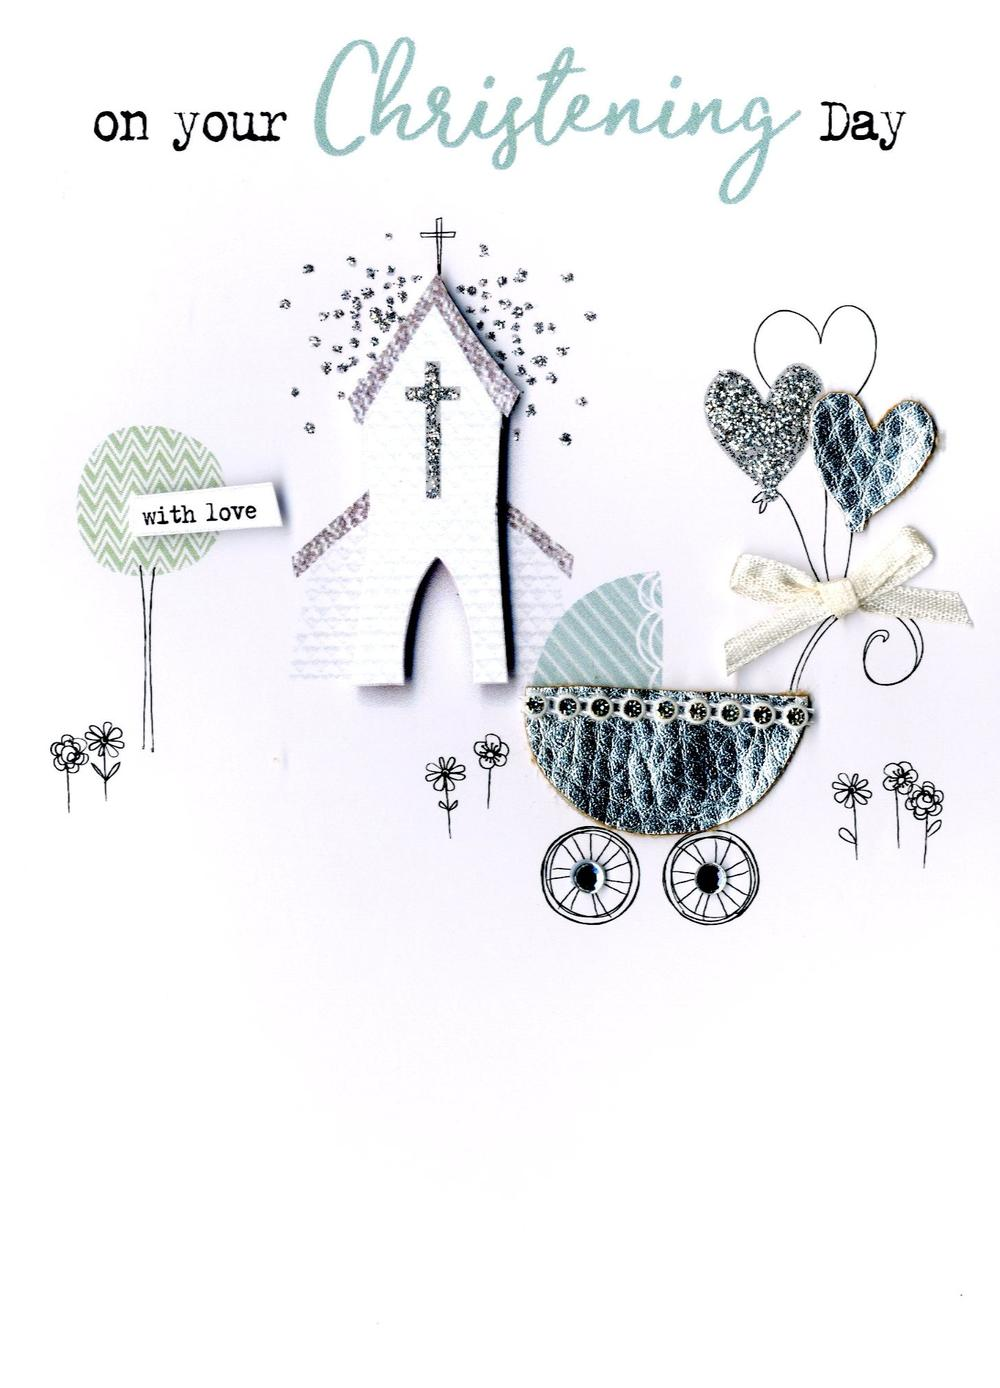 On Your Christening Day Irresistible Greeting Card